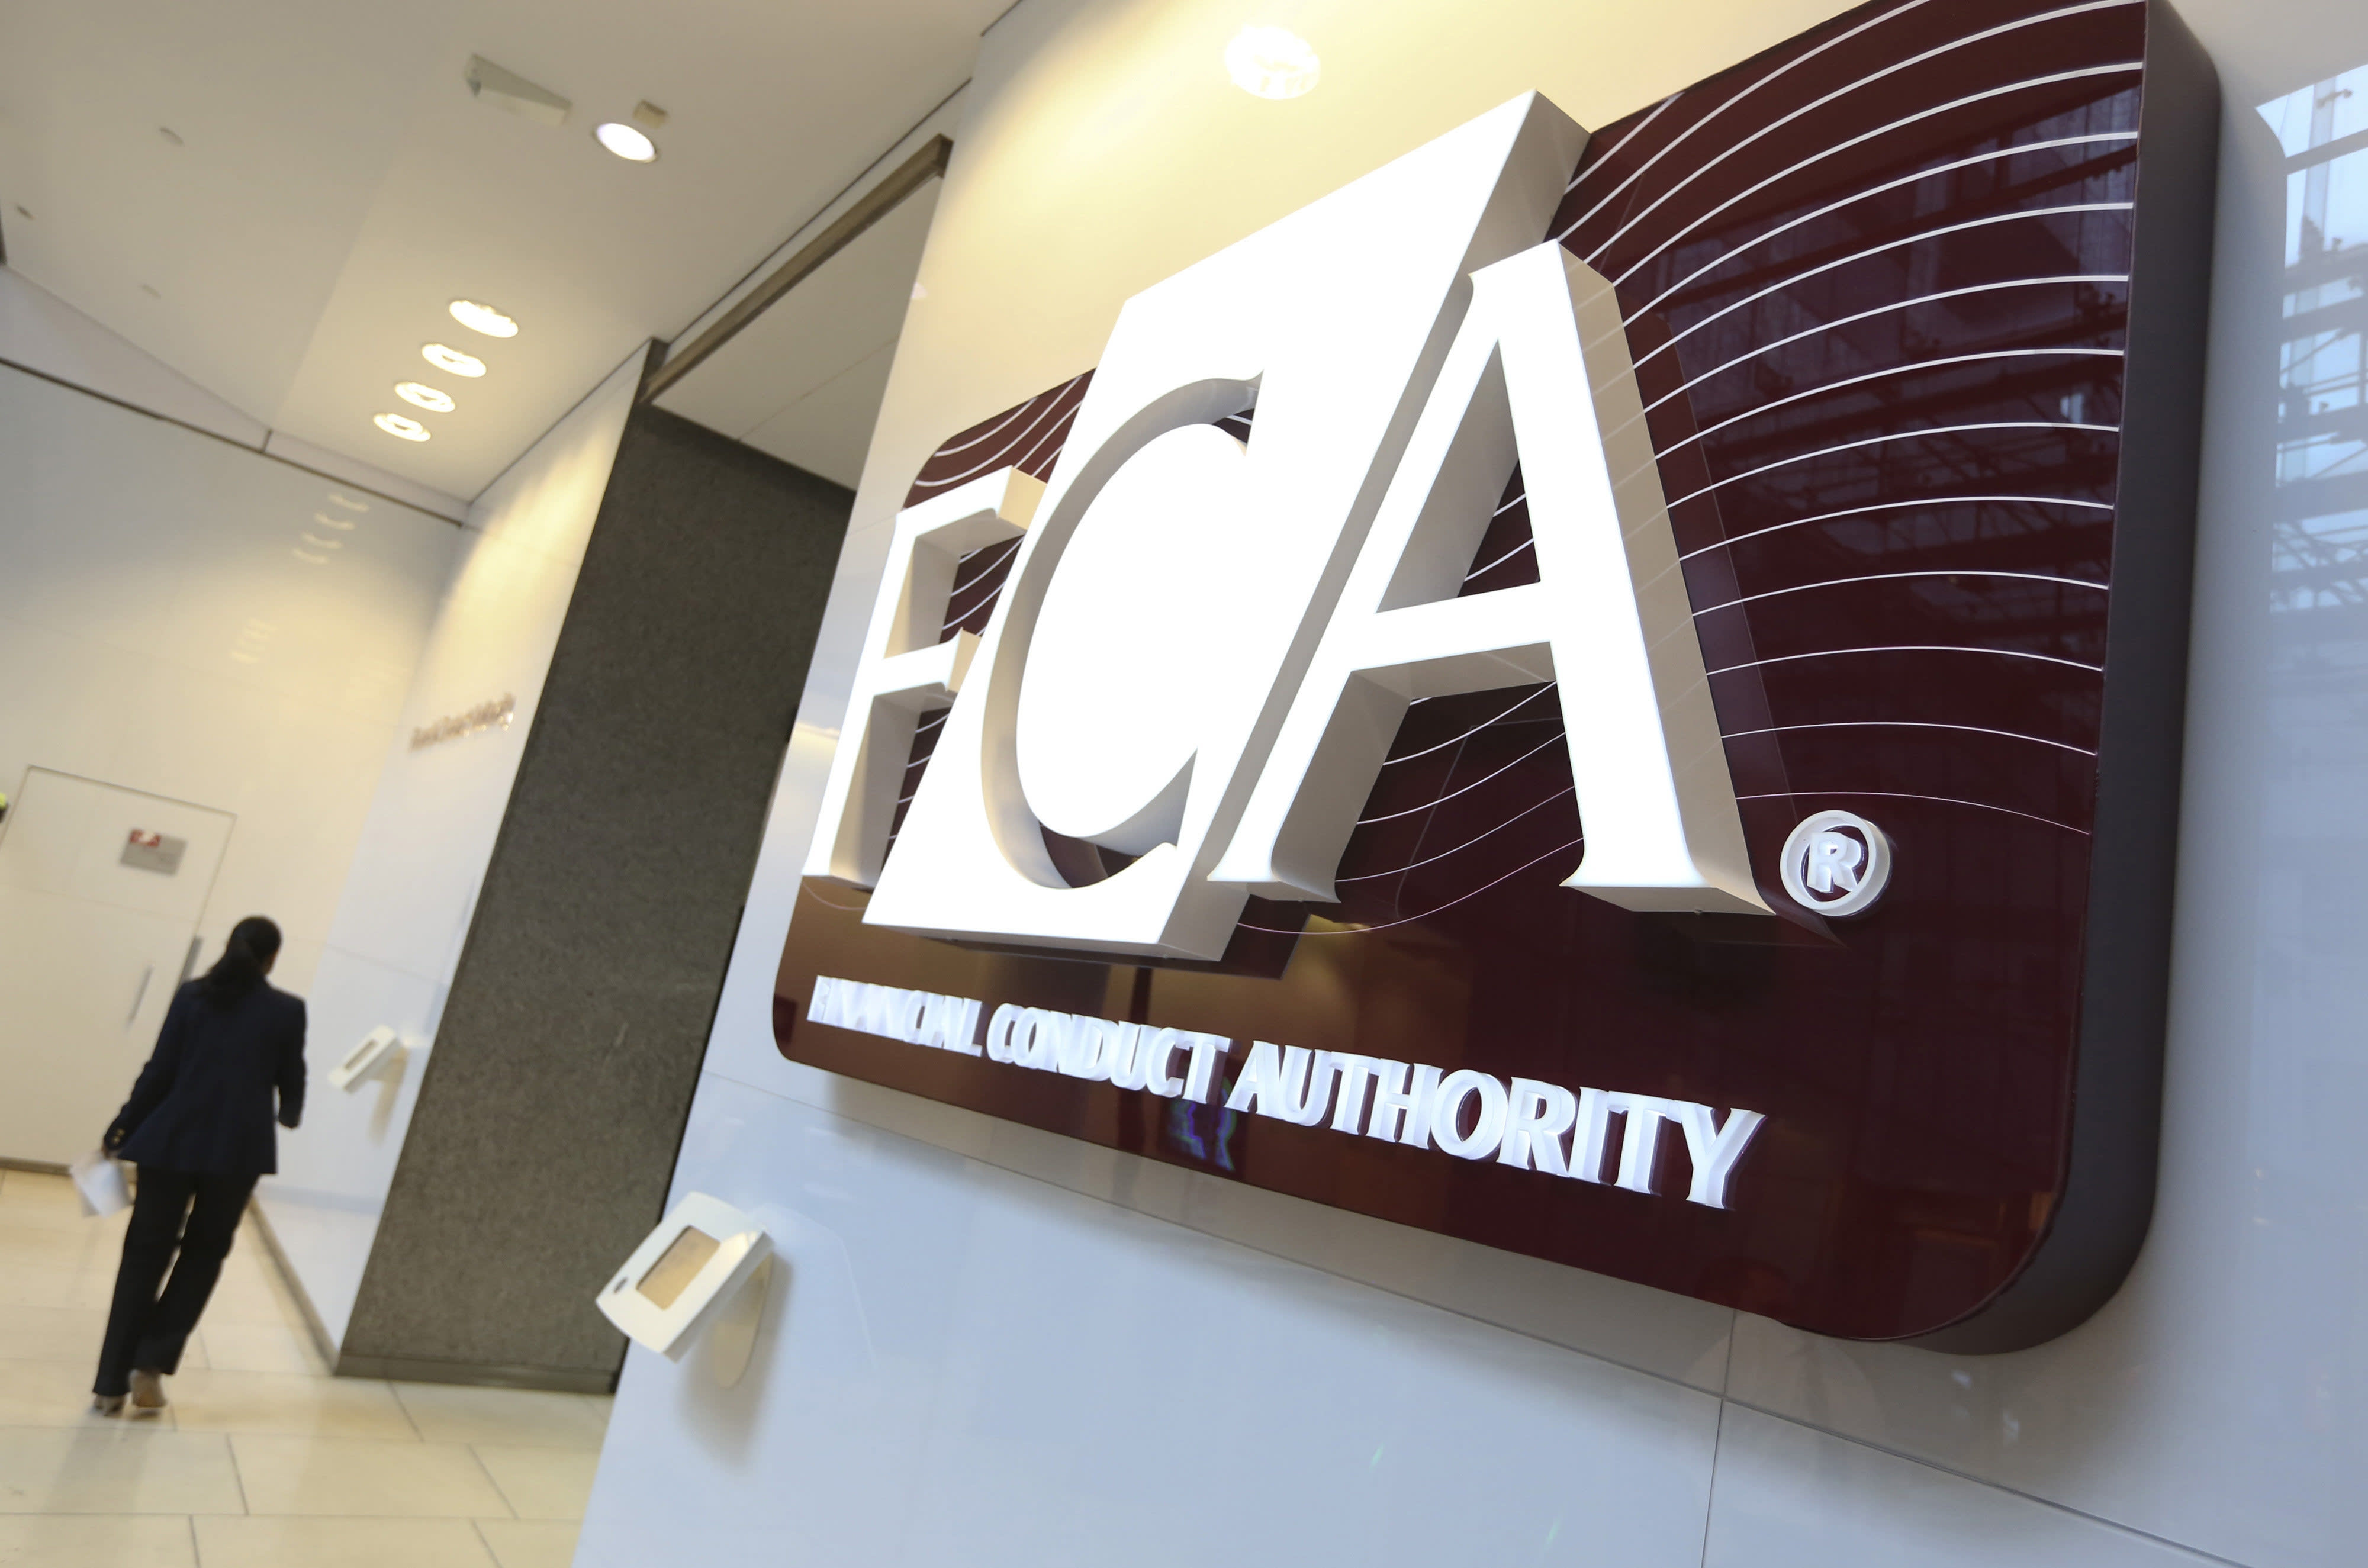 Swansea IFA suspended by FCA